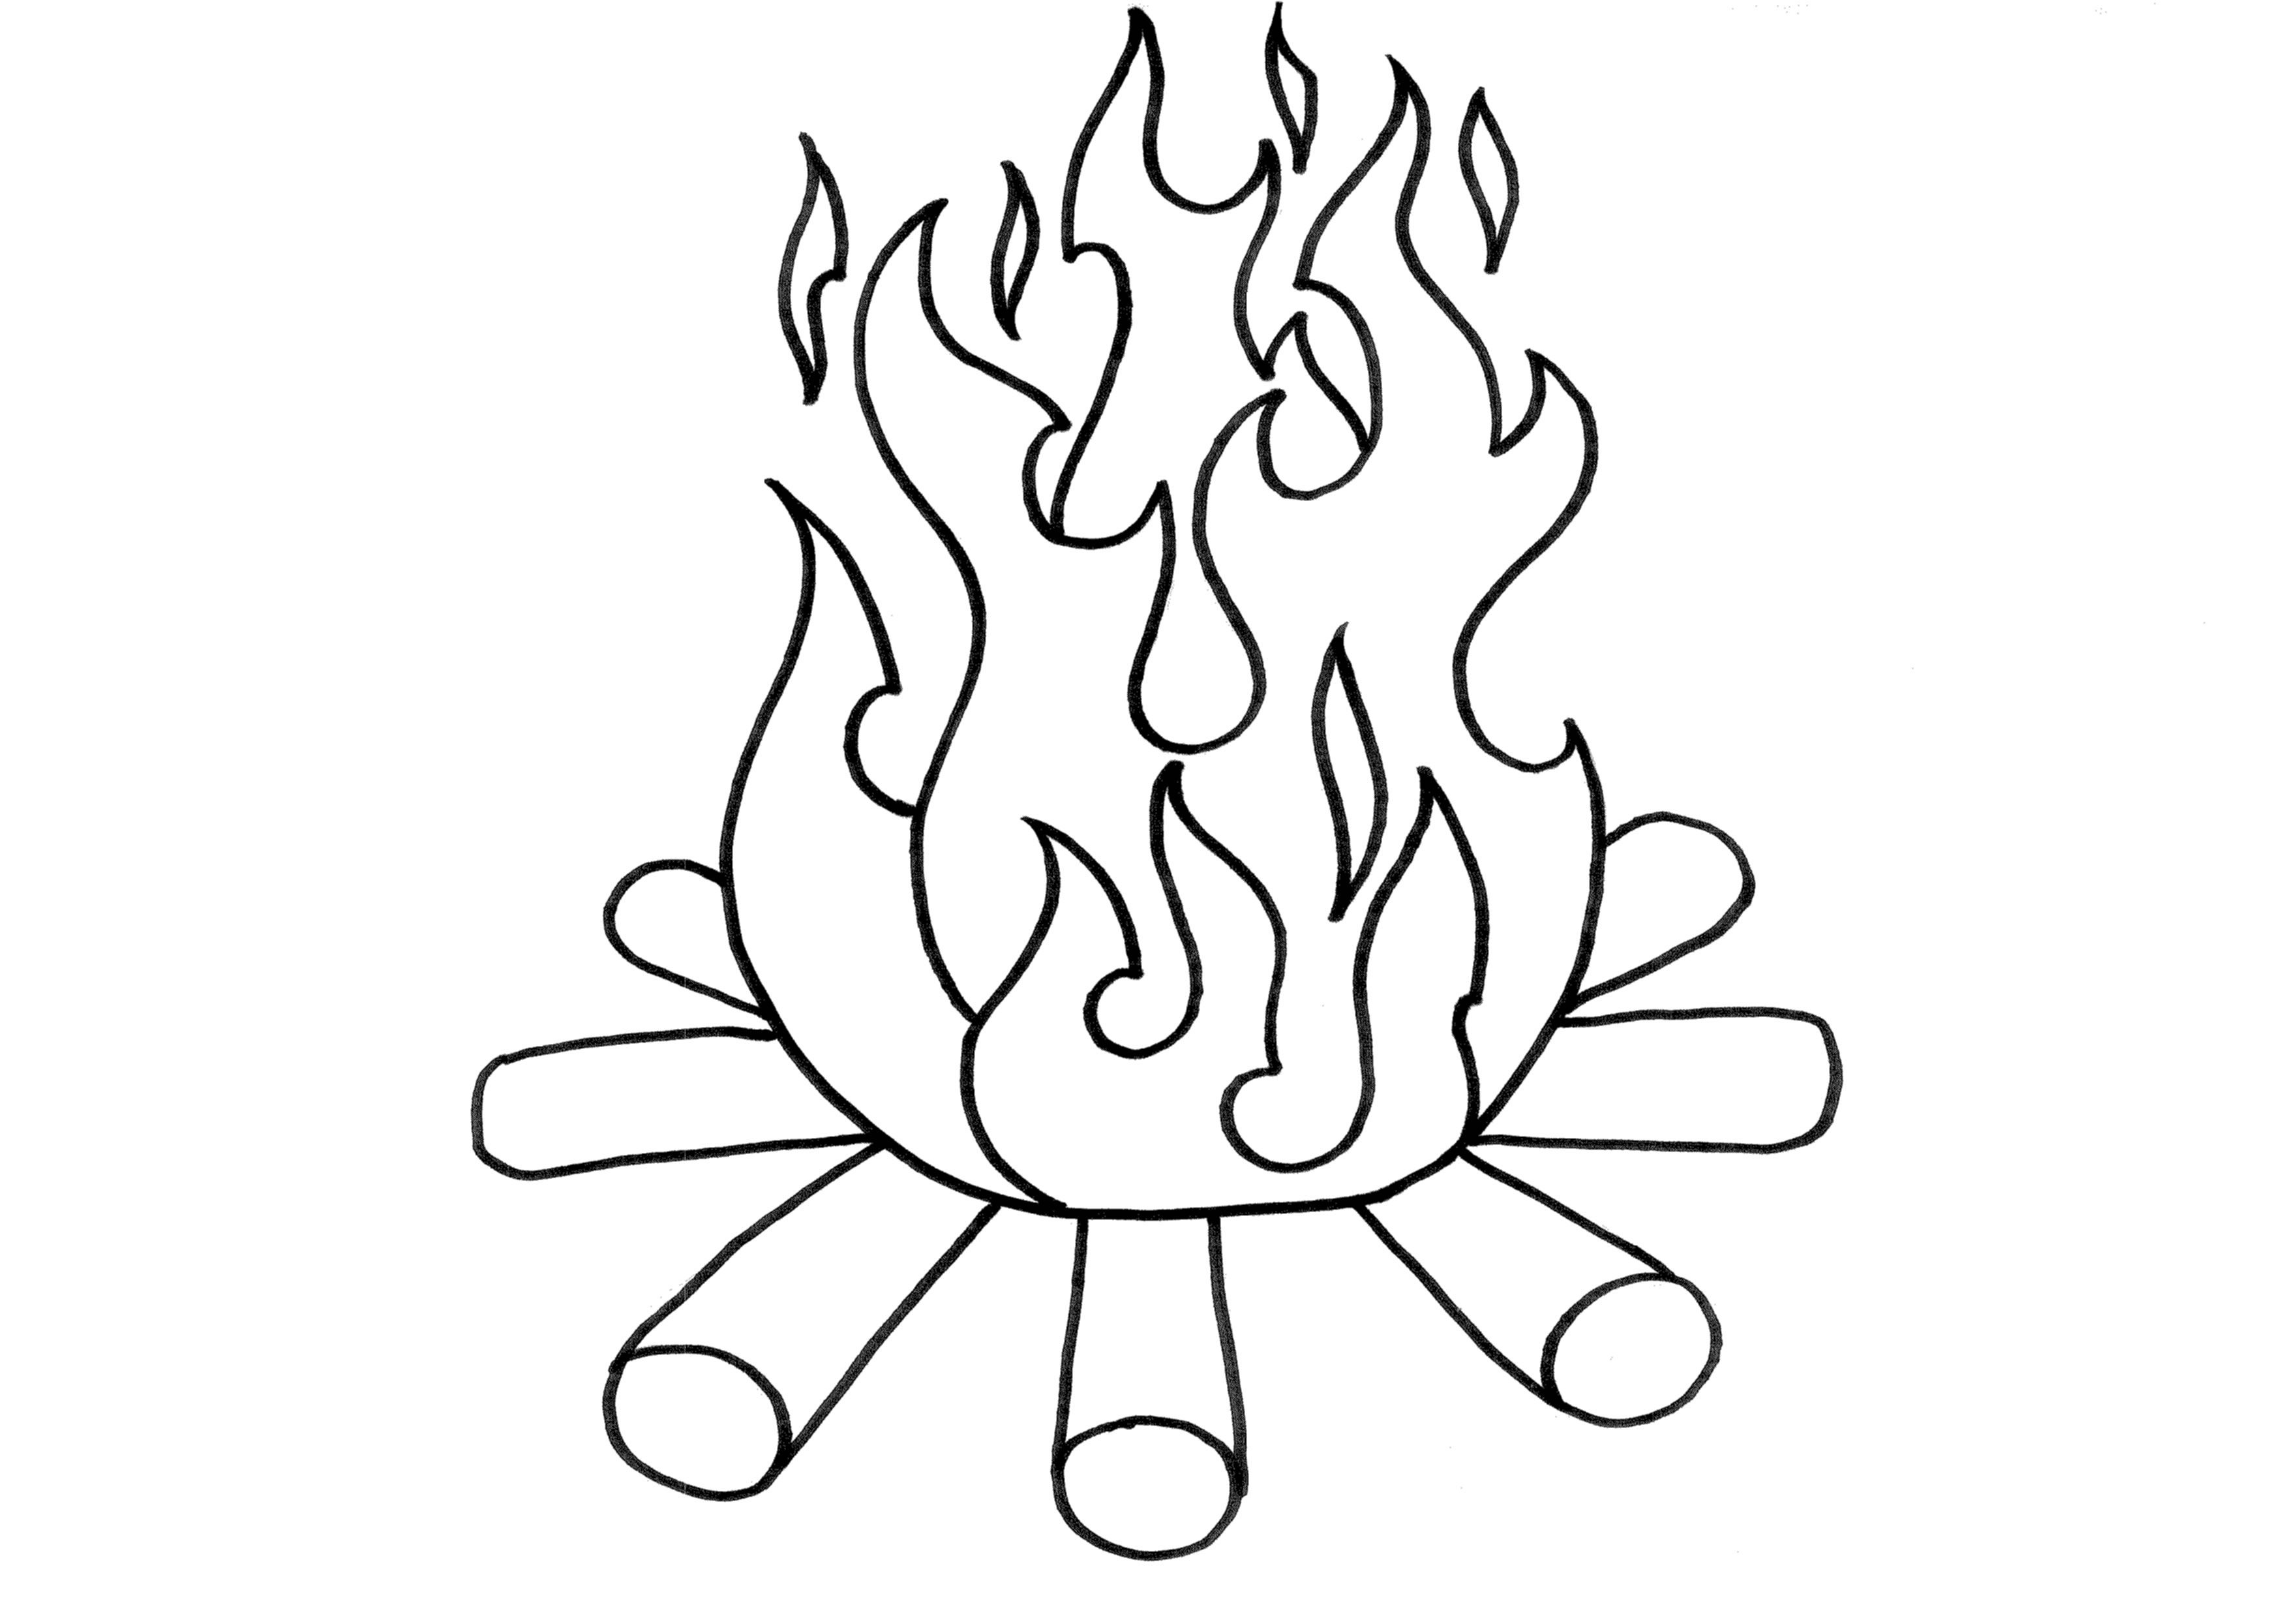 fire coloring pages printable campfire coloring page print color fun fire printable coloring pages